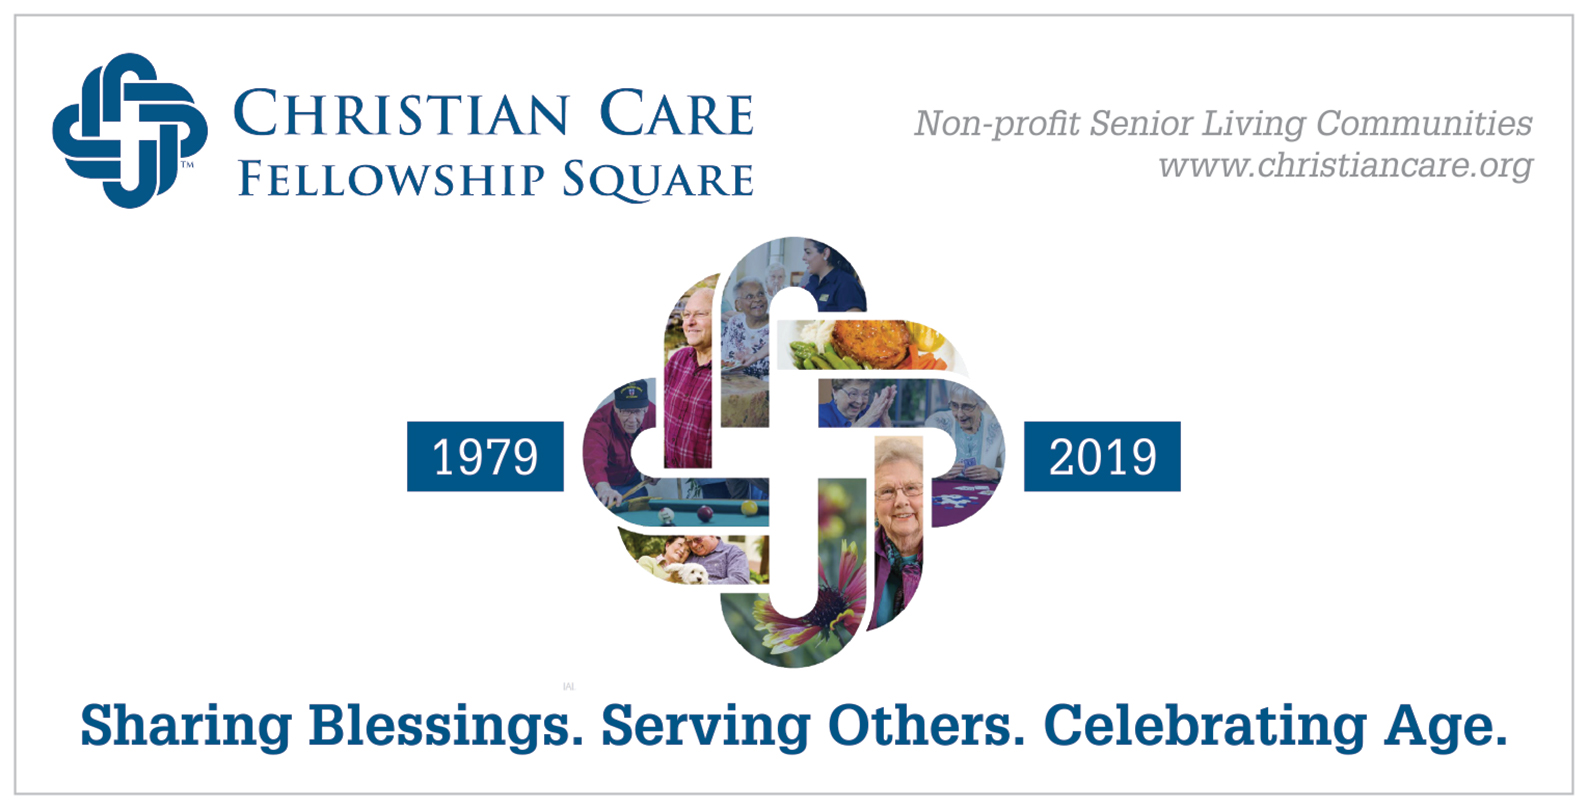 Christian Care Foundation